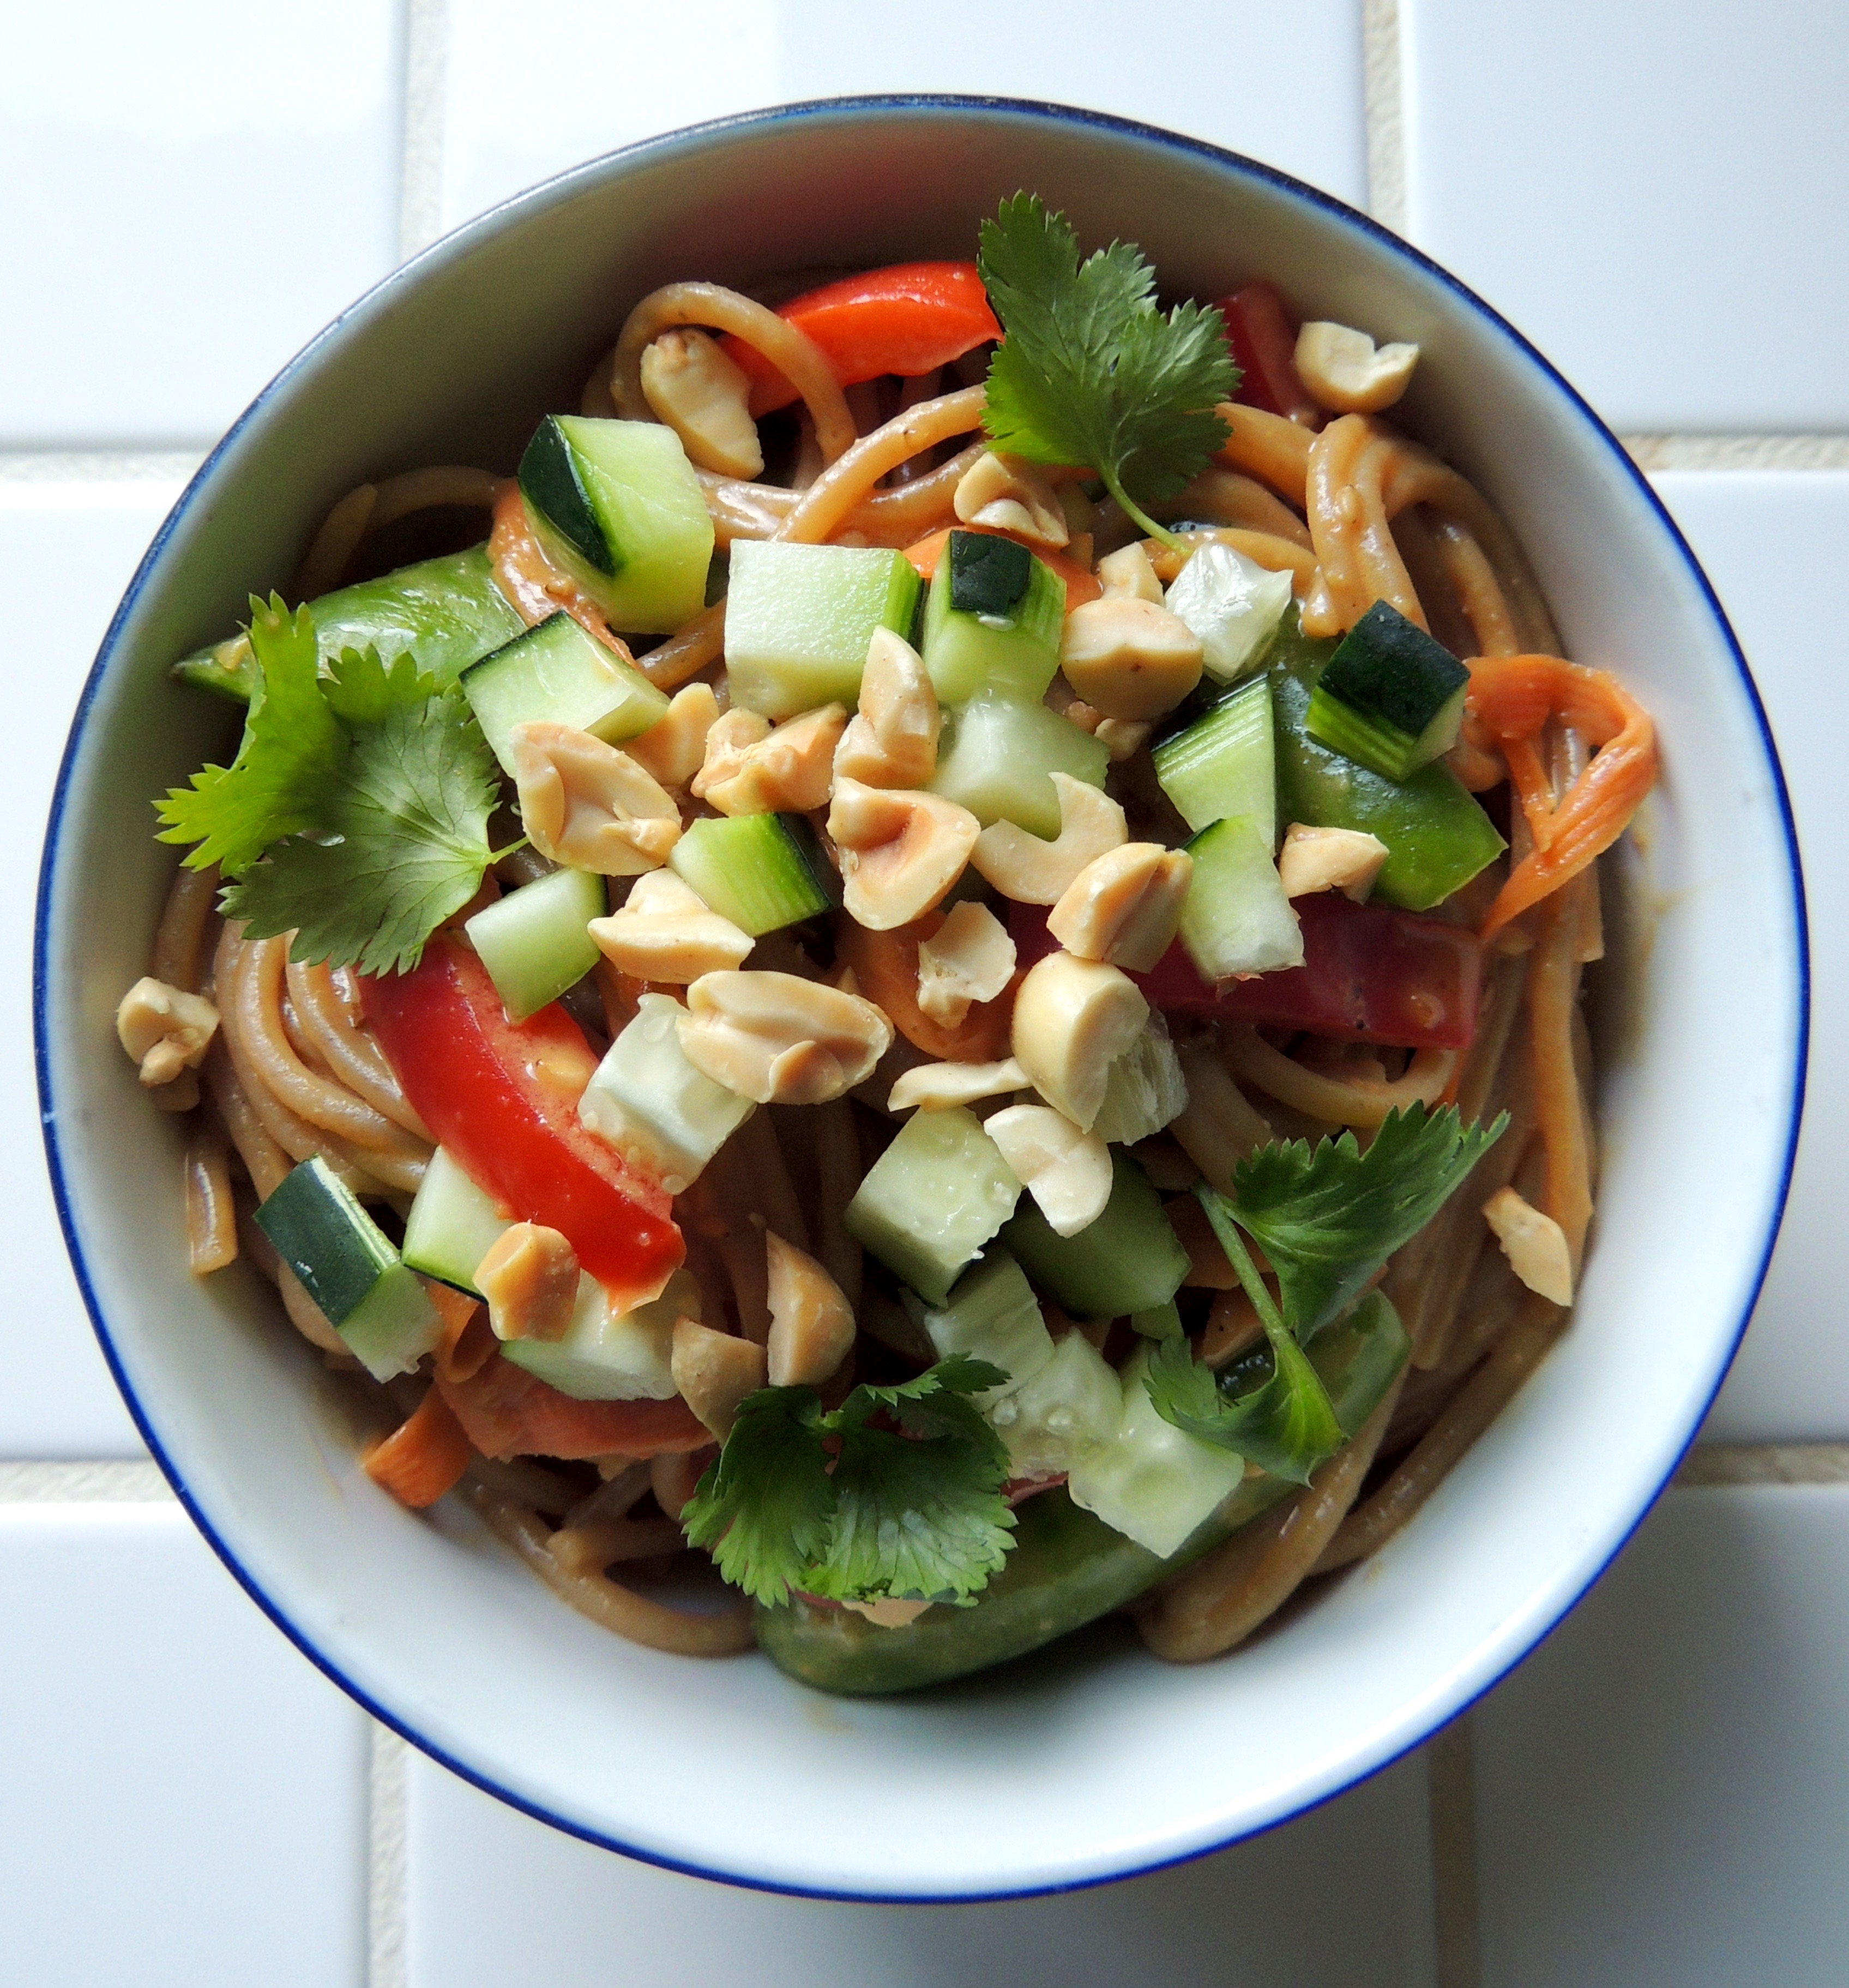 Noodle Salad with Raw Veggies & Peanut Sauce | Living Healthy in Seattle